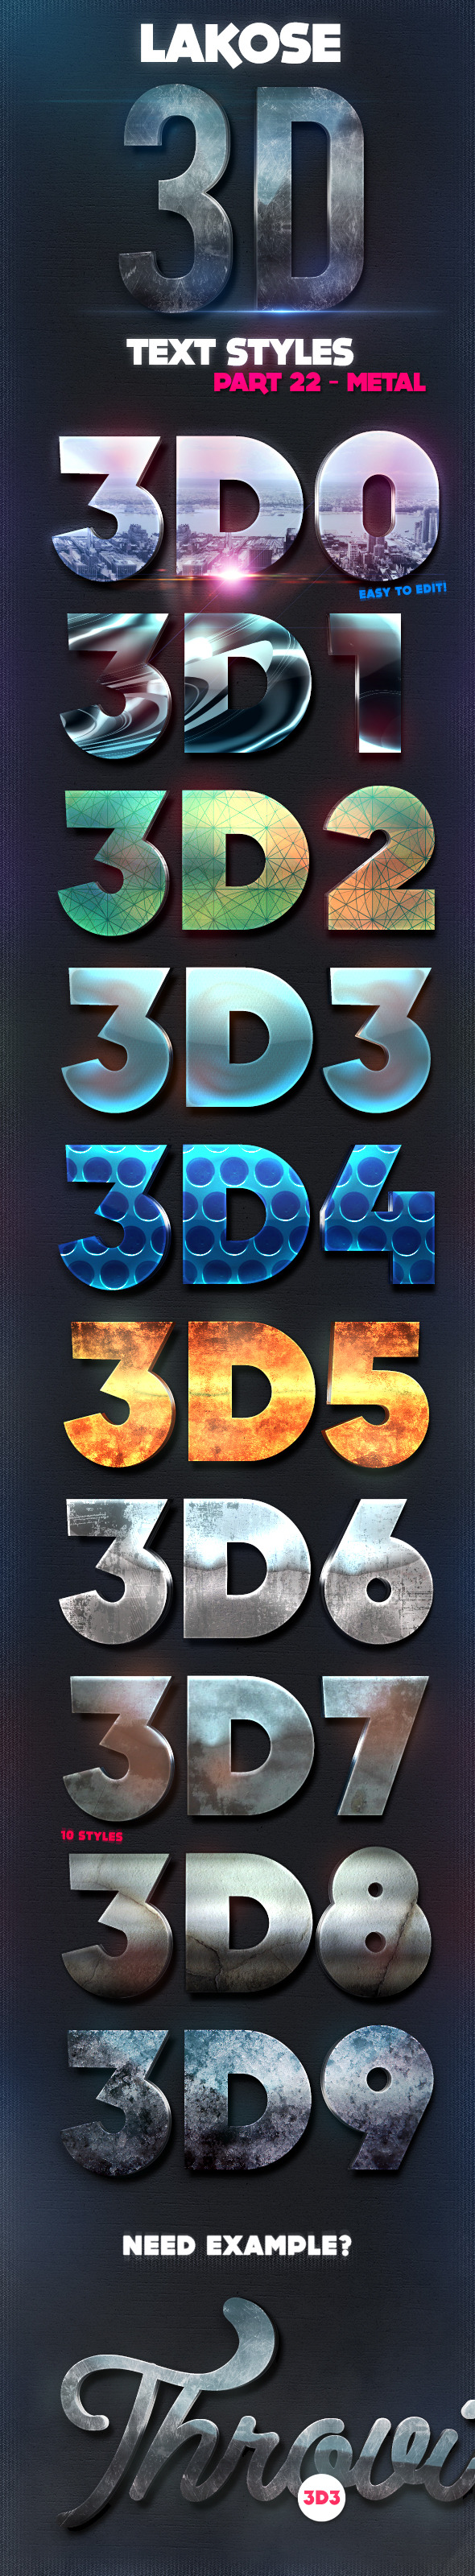 Lakose 3D Text Styles Part 22